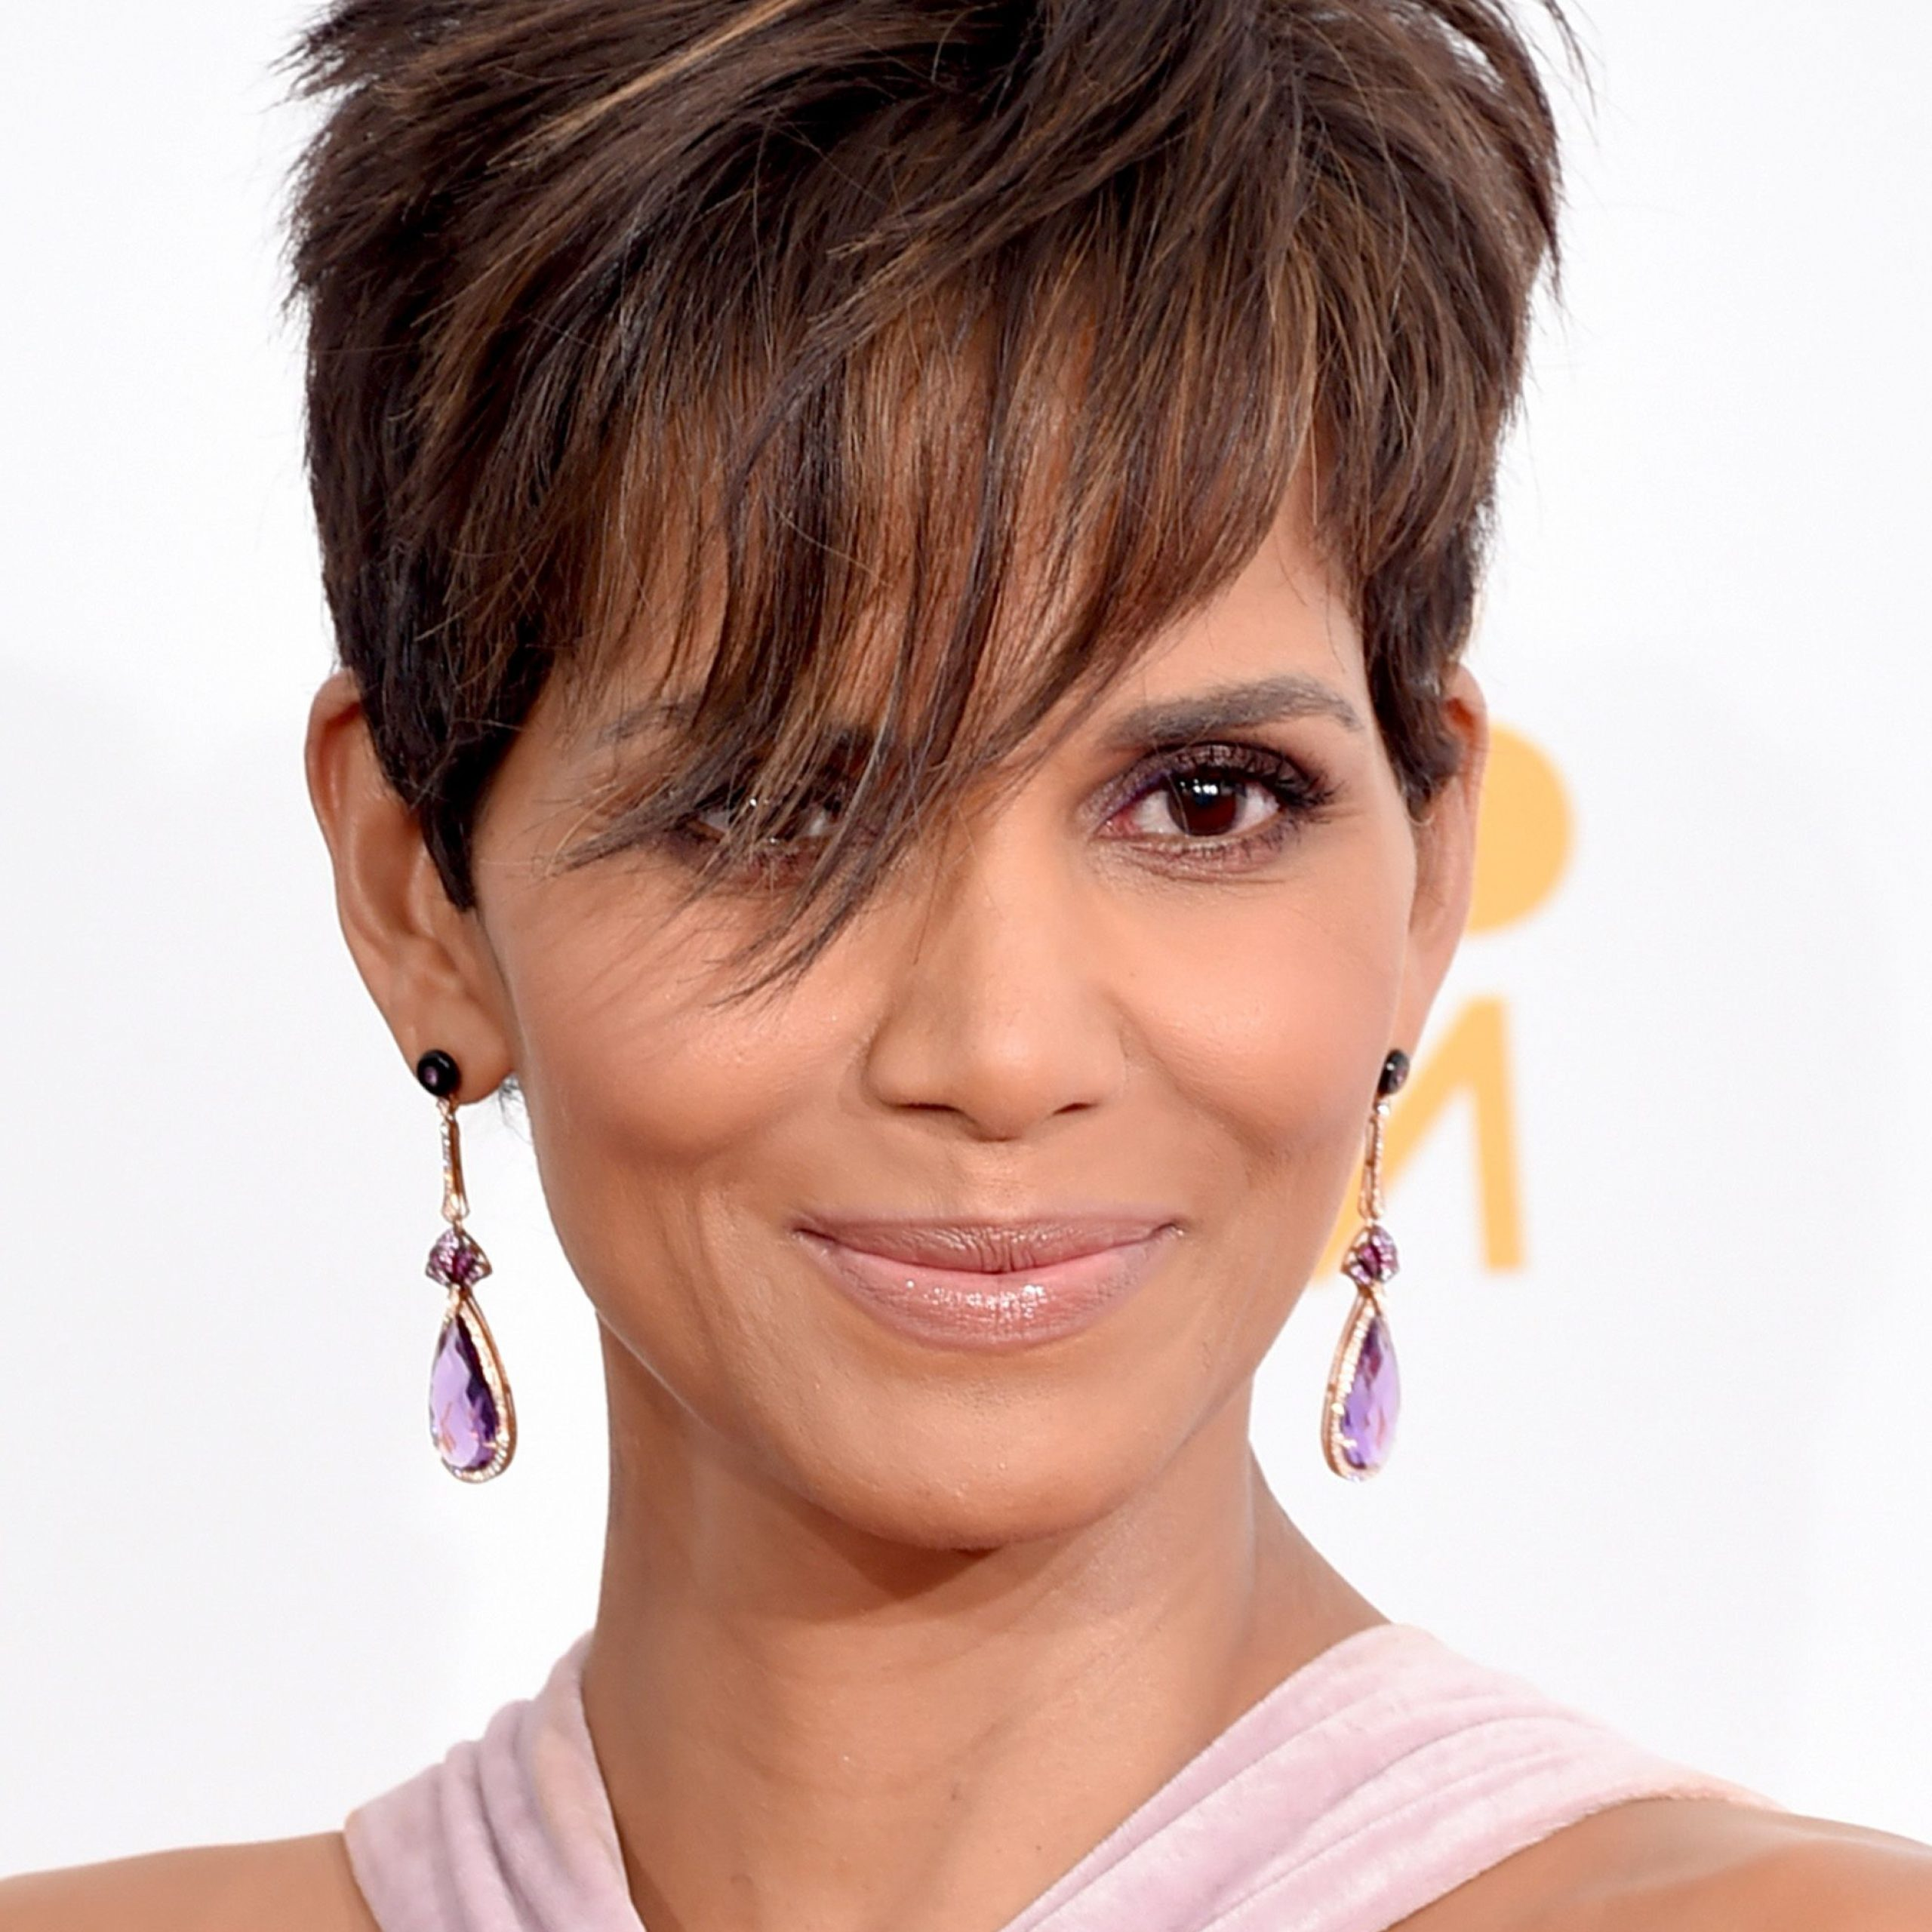 40 Best Short Pixie Cut Hairstyles 2020 – Cute Pixie In Fashionable Choppy Pixie Haircuts With Short Bangs (View 17 of 20)